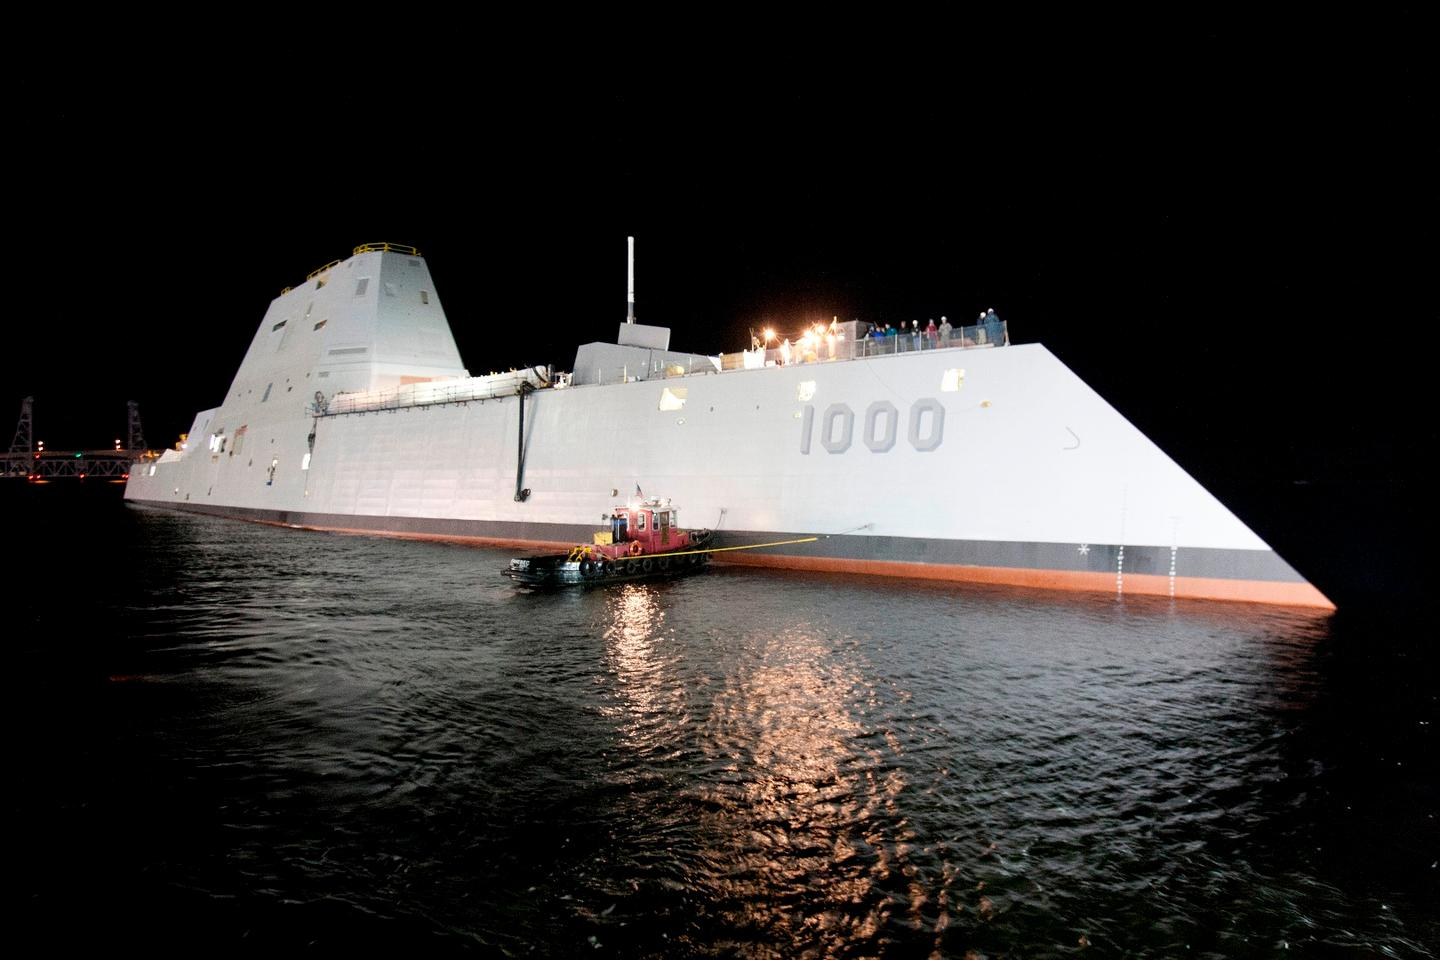 The Zumwalt was launched in 2014